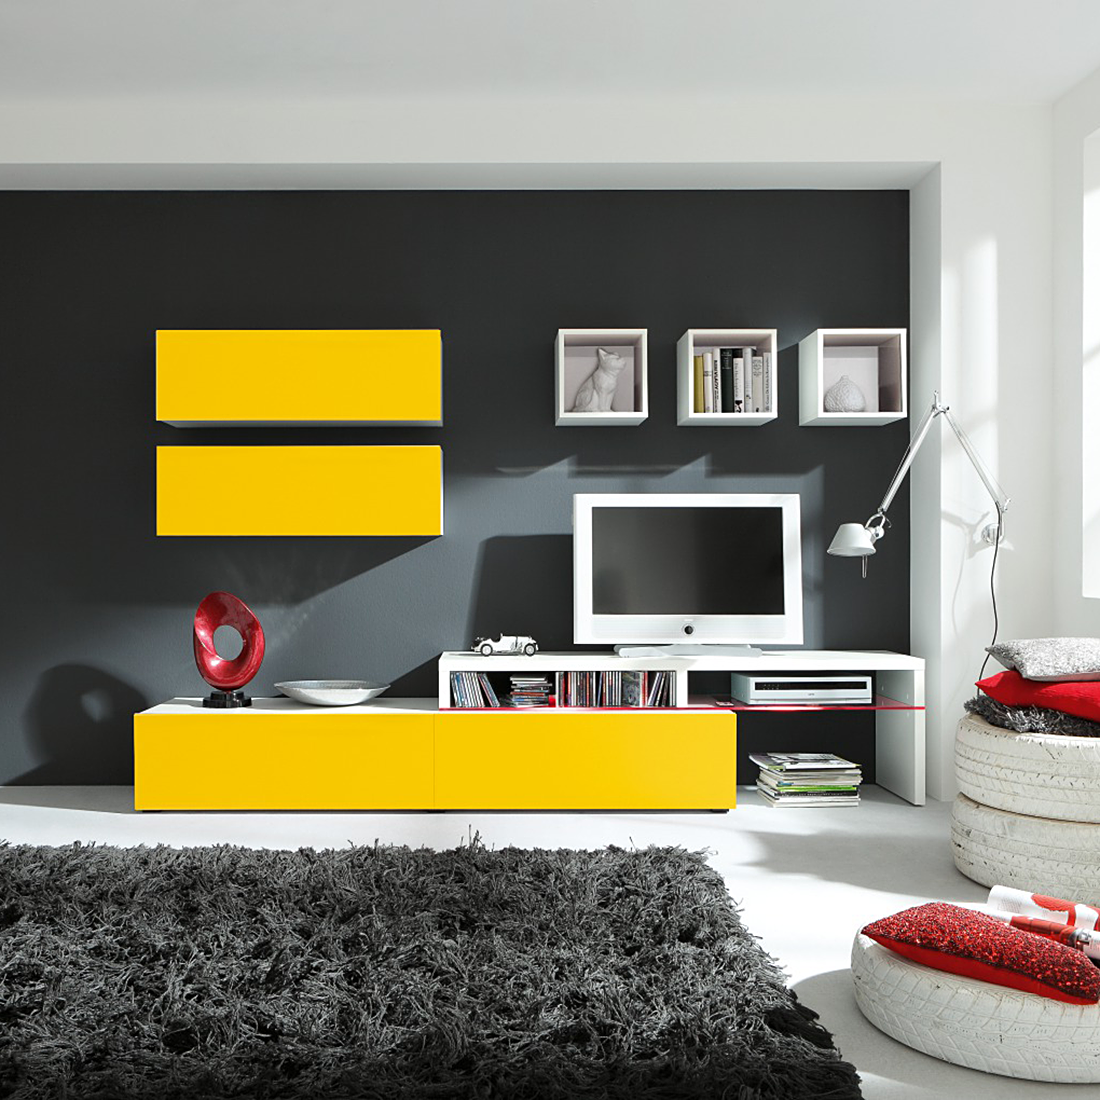 meine farben nur w rde ich eine gelbe wandfarbe und eine graue wohnwand bevorzugen. Black Bedroom Furniture Sets. Home Design Ideas